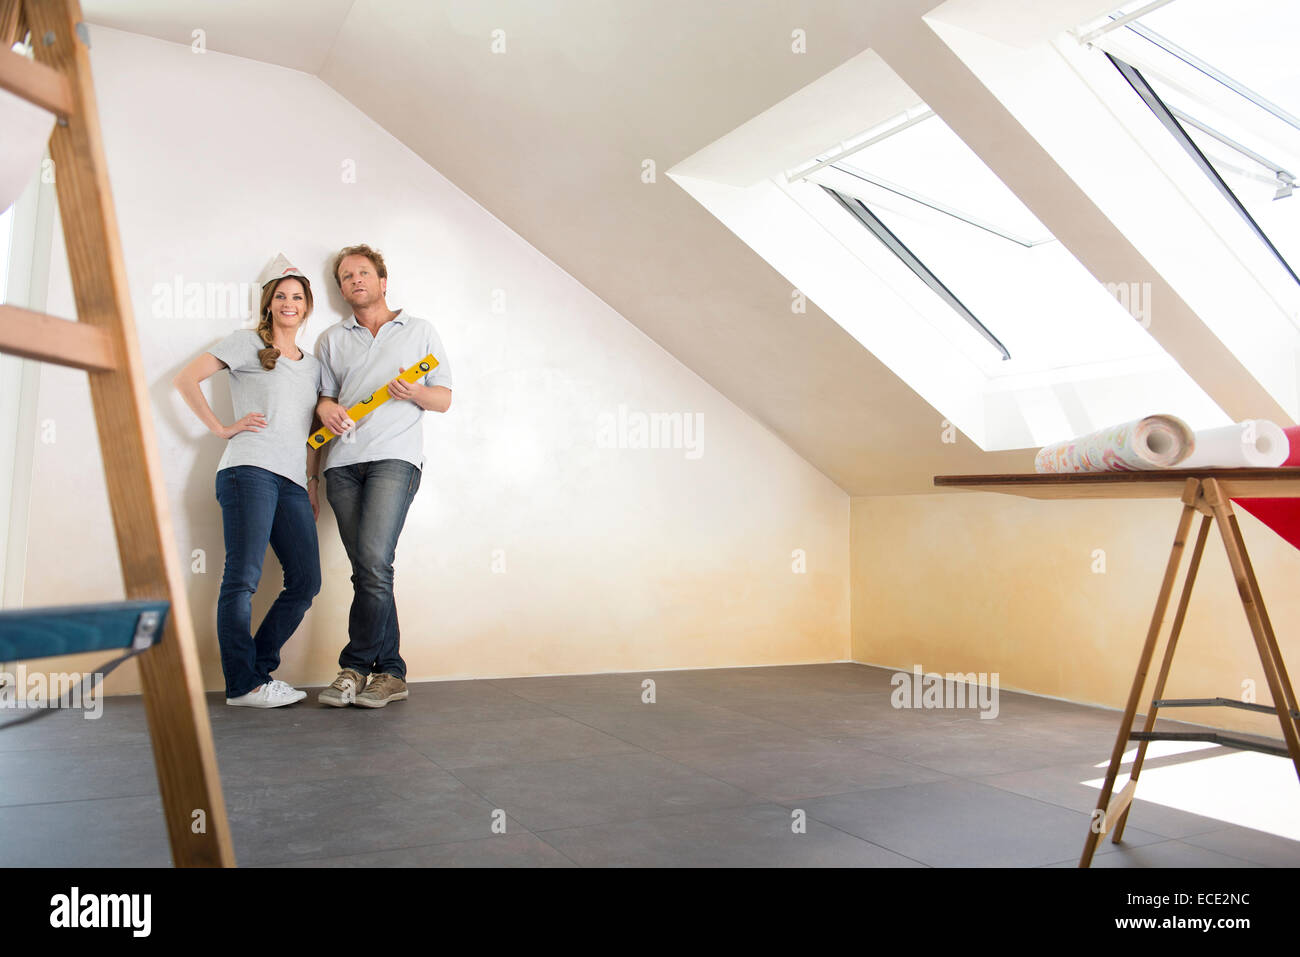 Planning decorating new home room couple Stock Photo